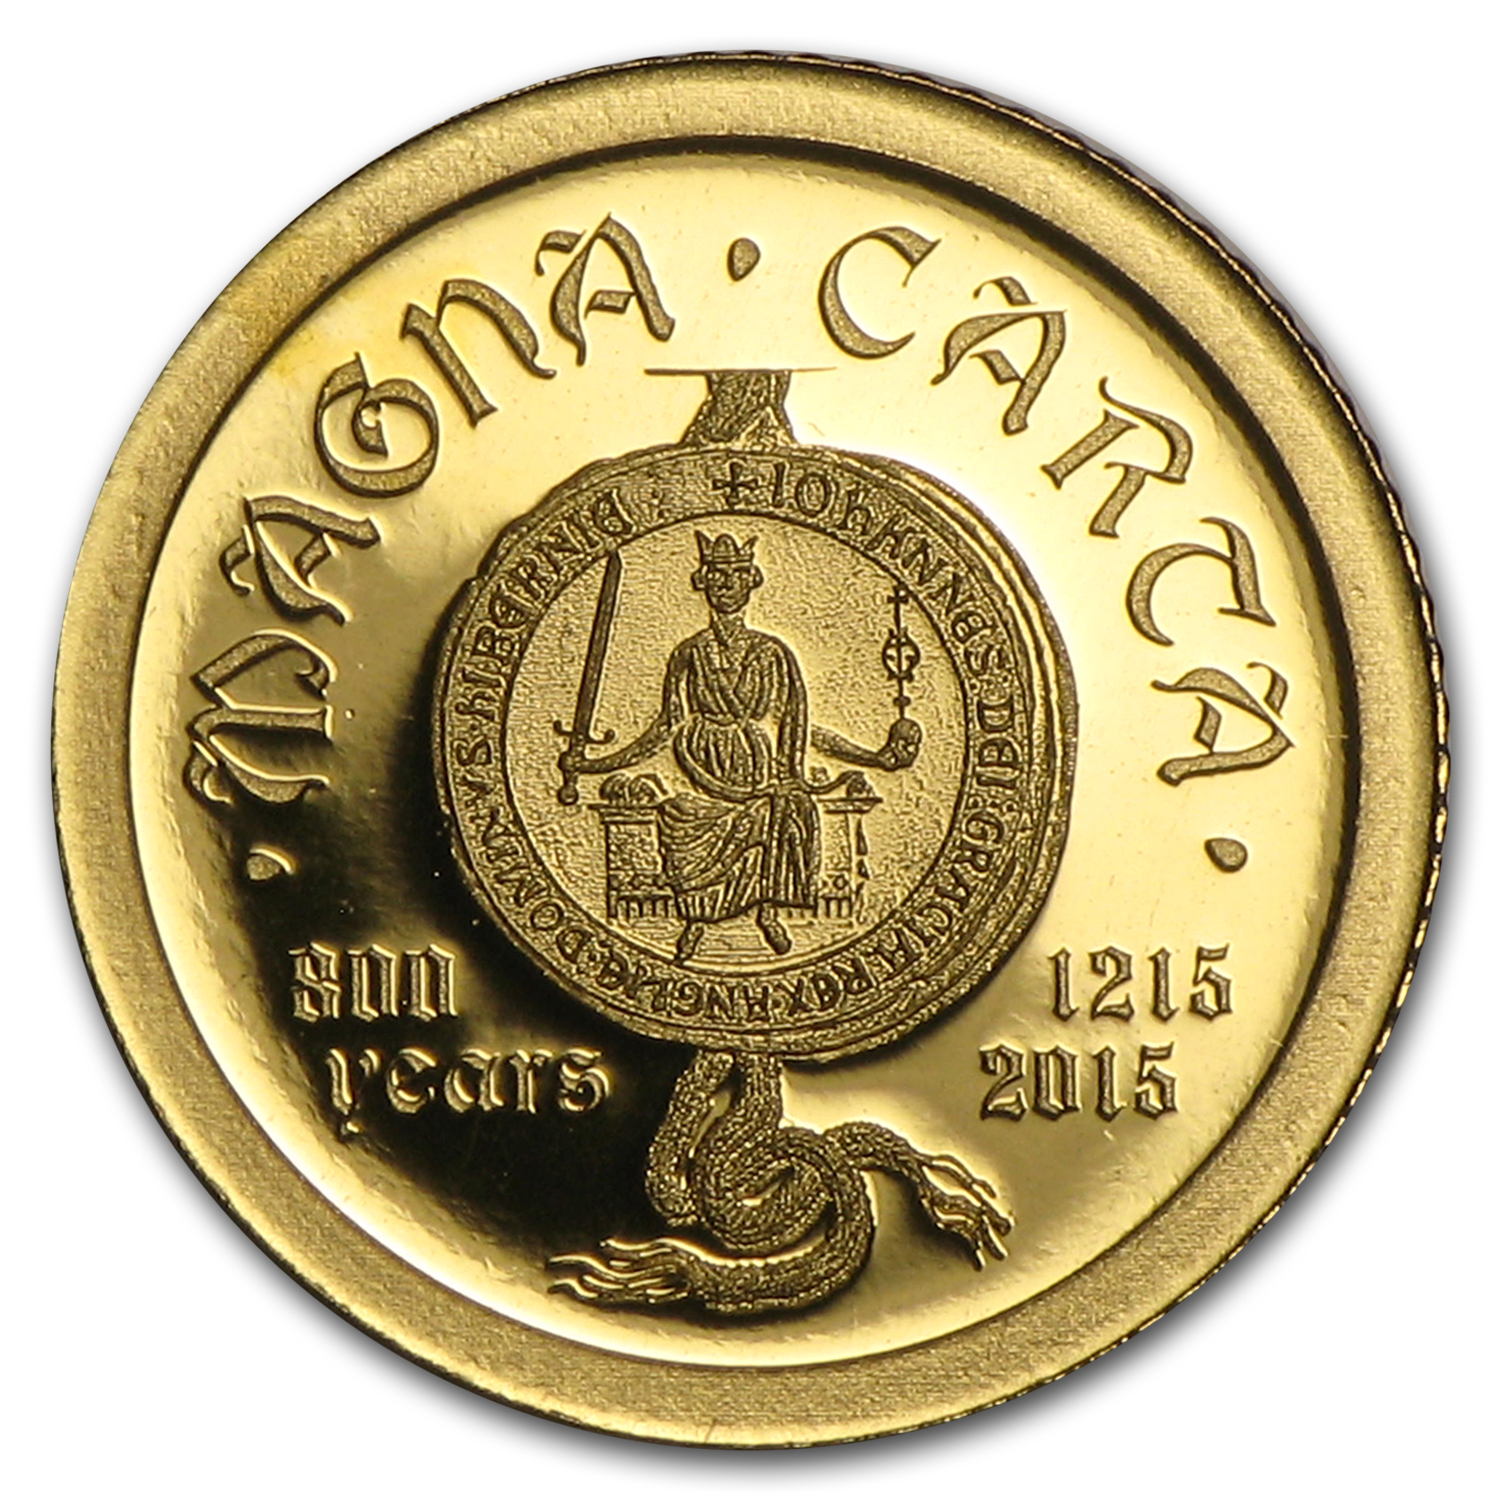 2015 Cook Islands 1/2 gram Gold 800 Years of Magna Carta